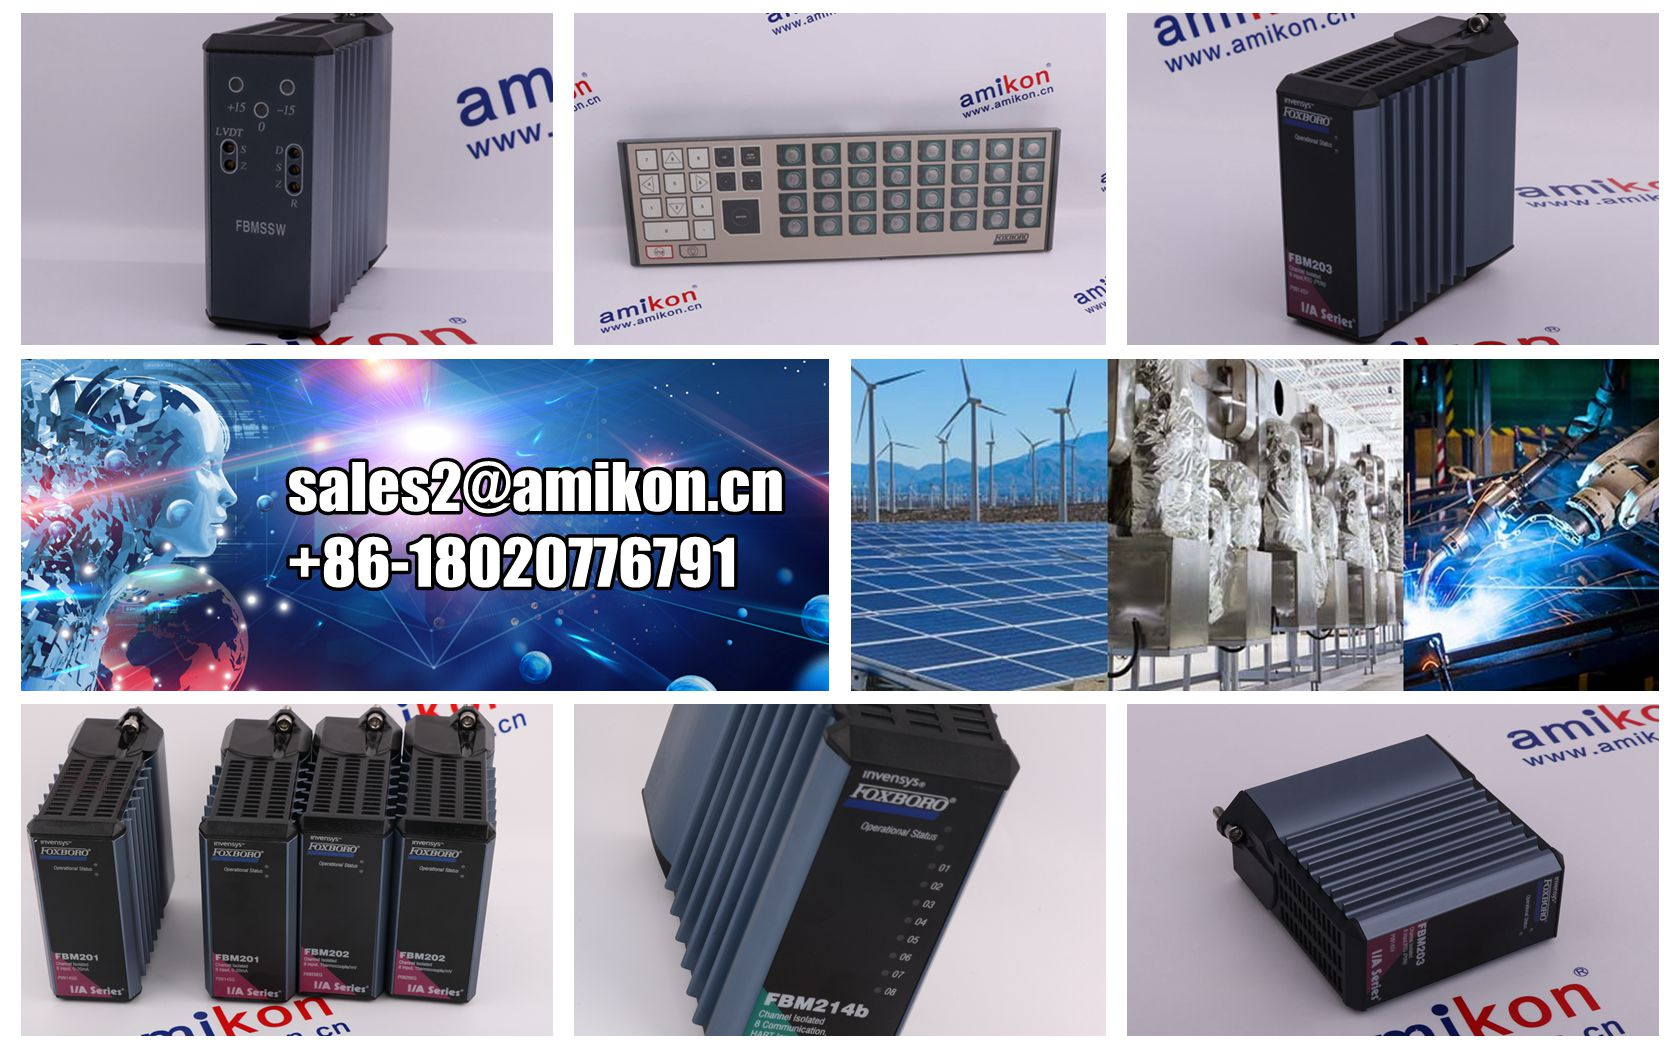 PM891K01 3BSE053241R1 | sales2@amikon.cn | ship in 24h